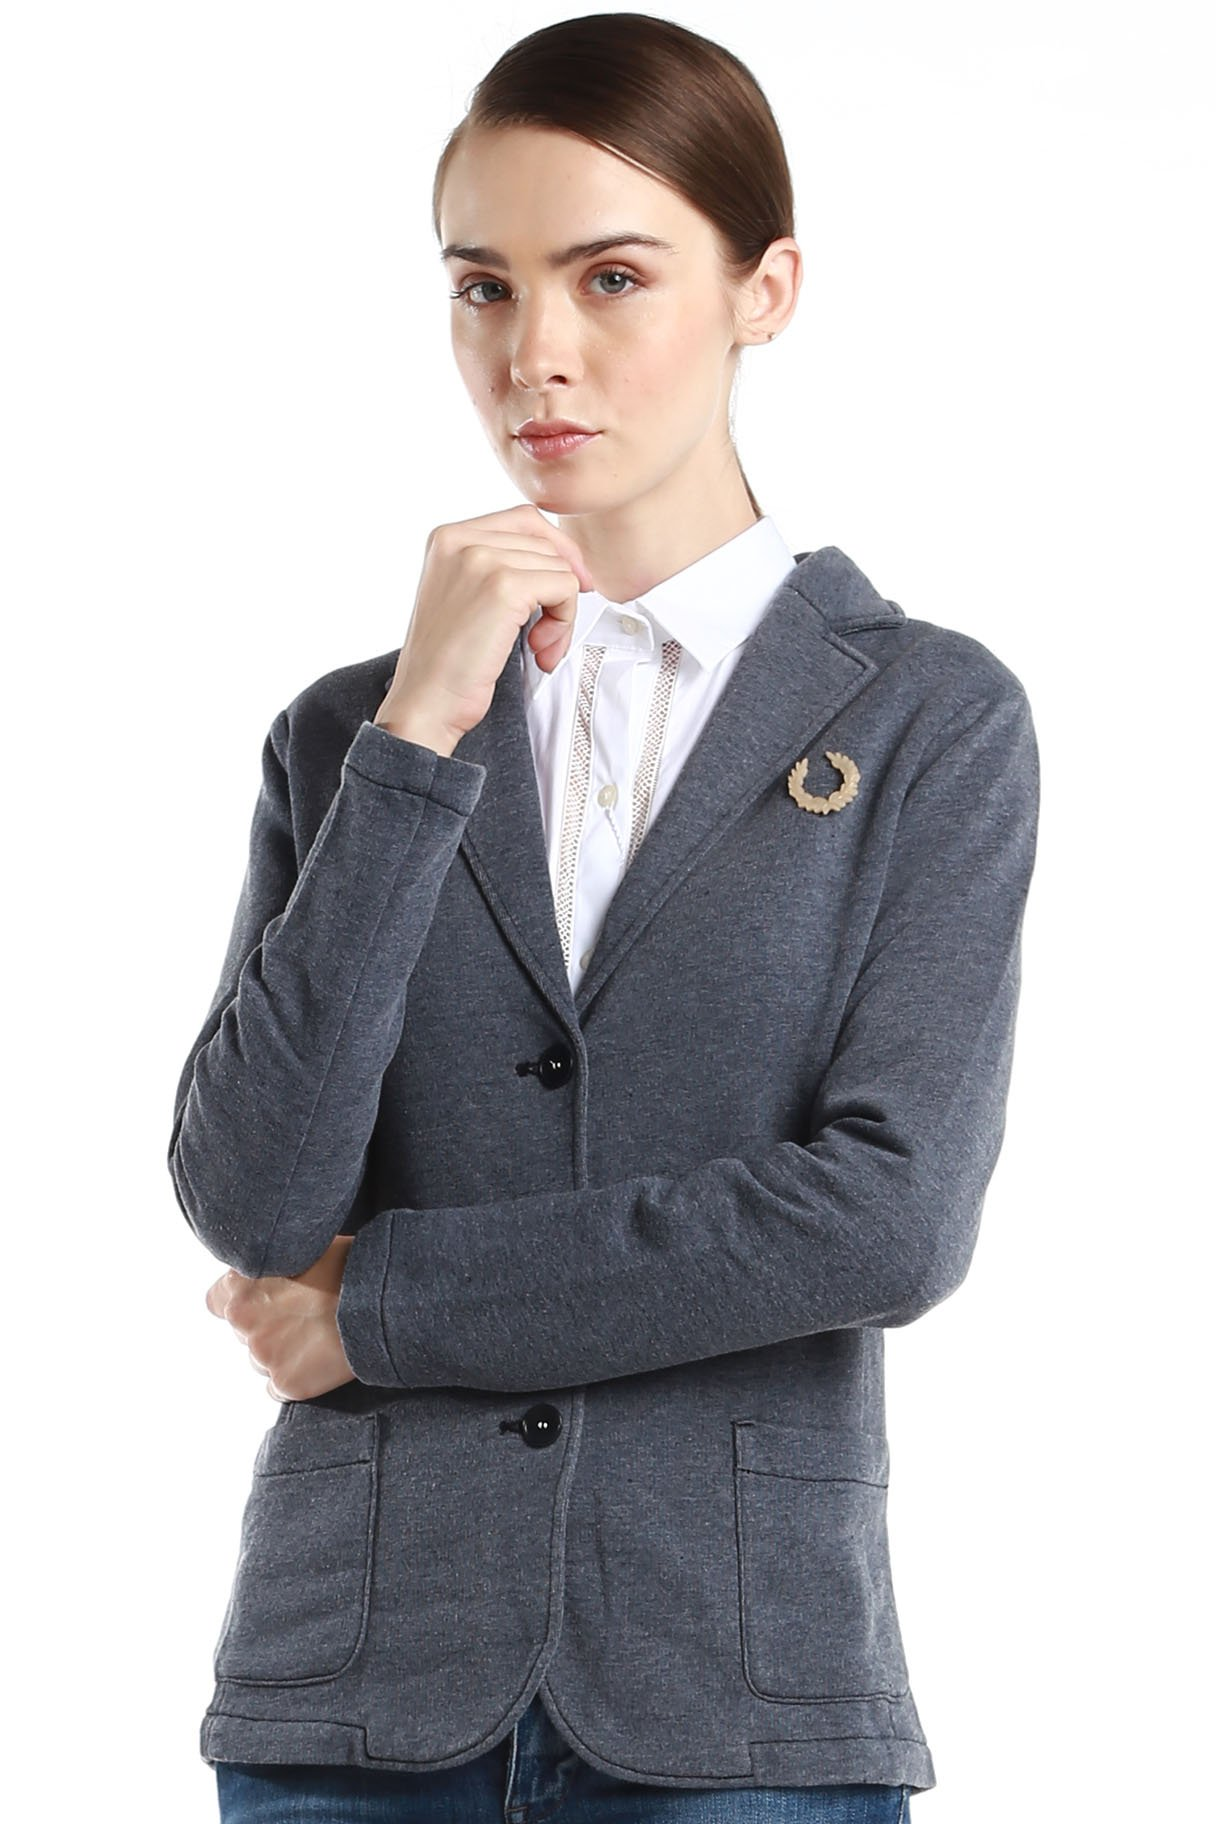 Fred Perry Green Label Women's Small Navy Blazer